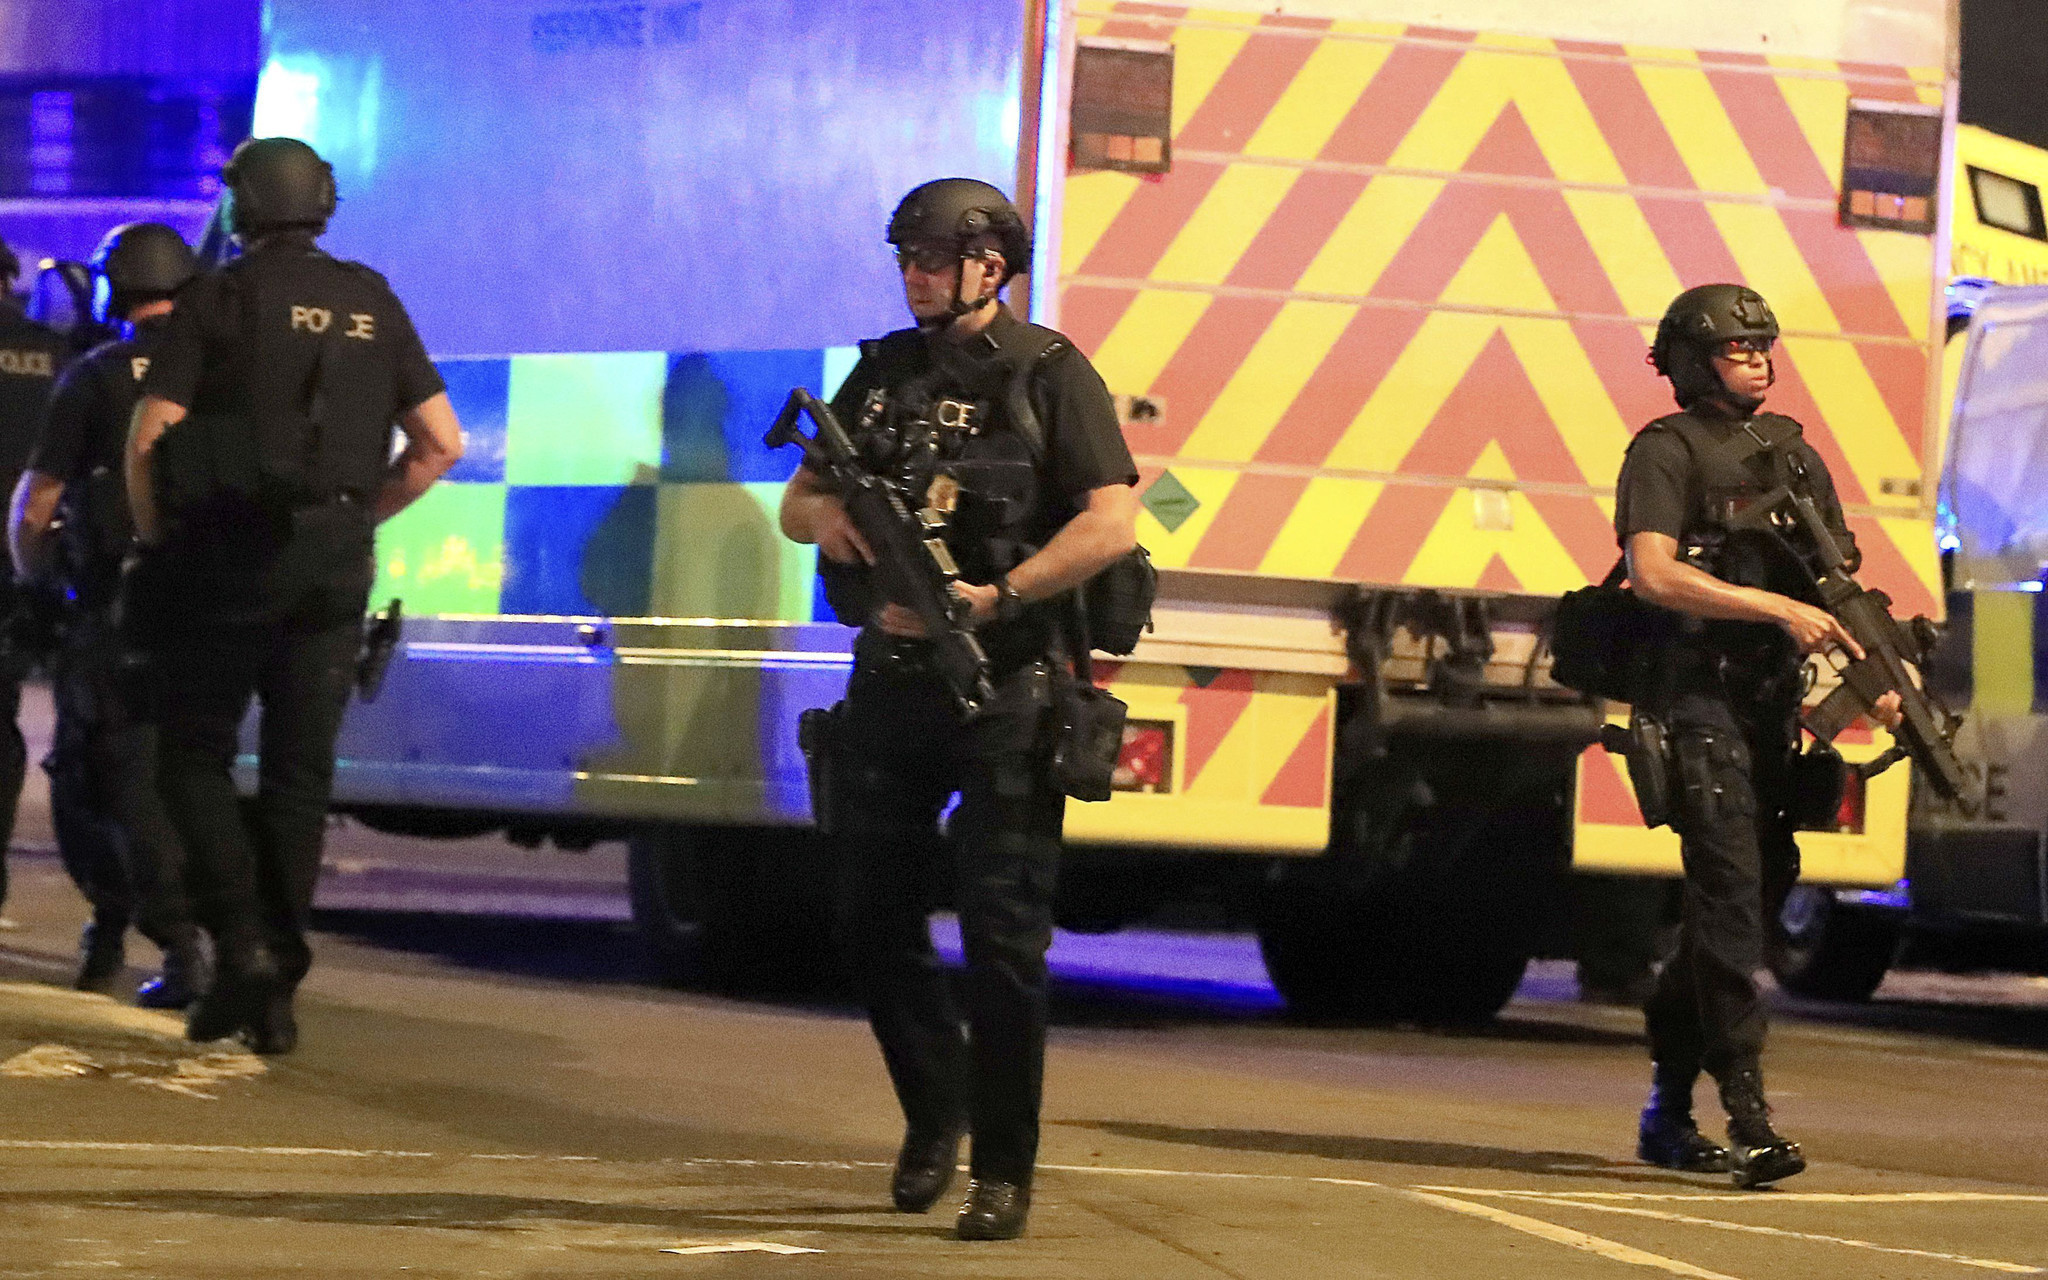 A heinous act of evil in Manchester